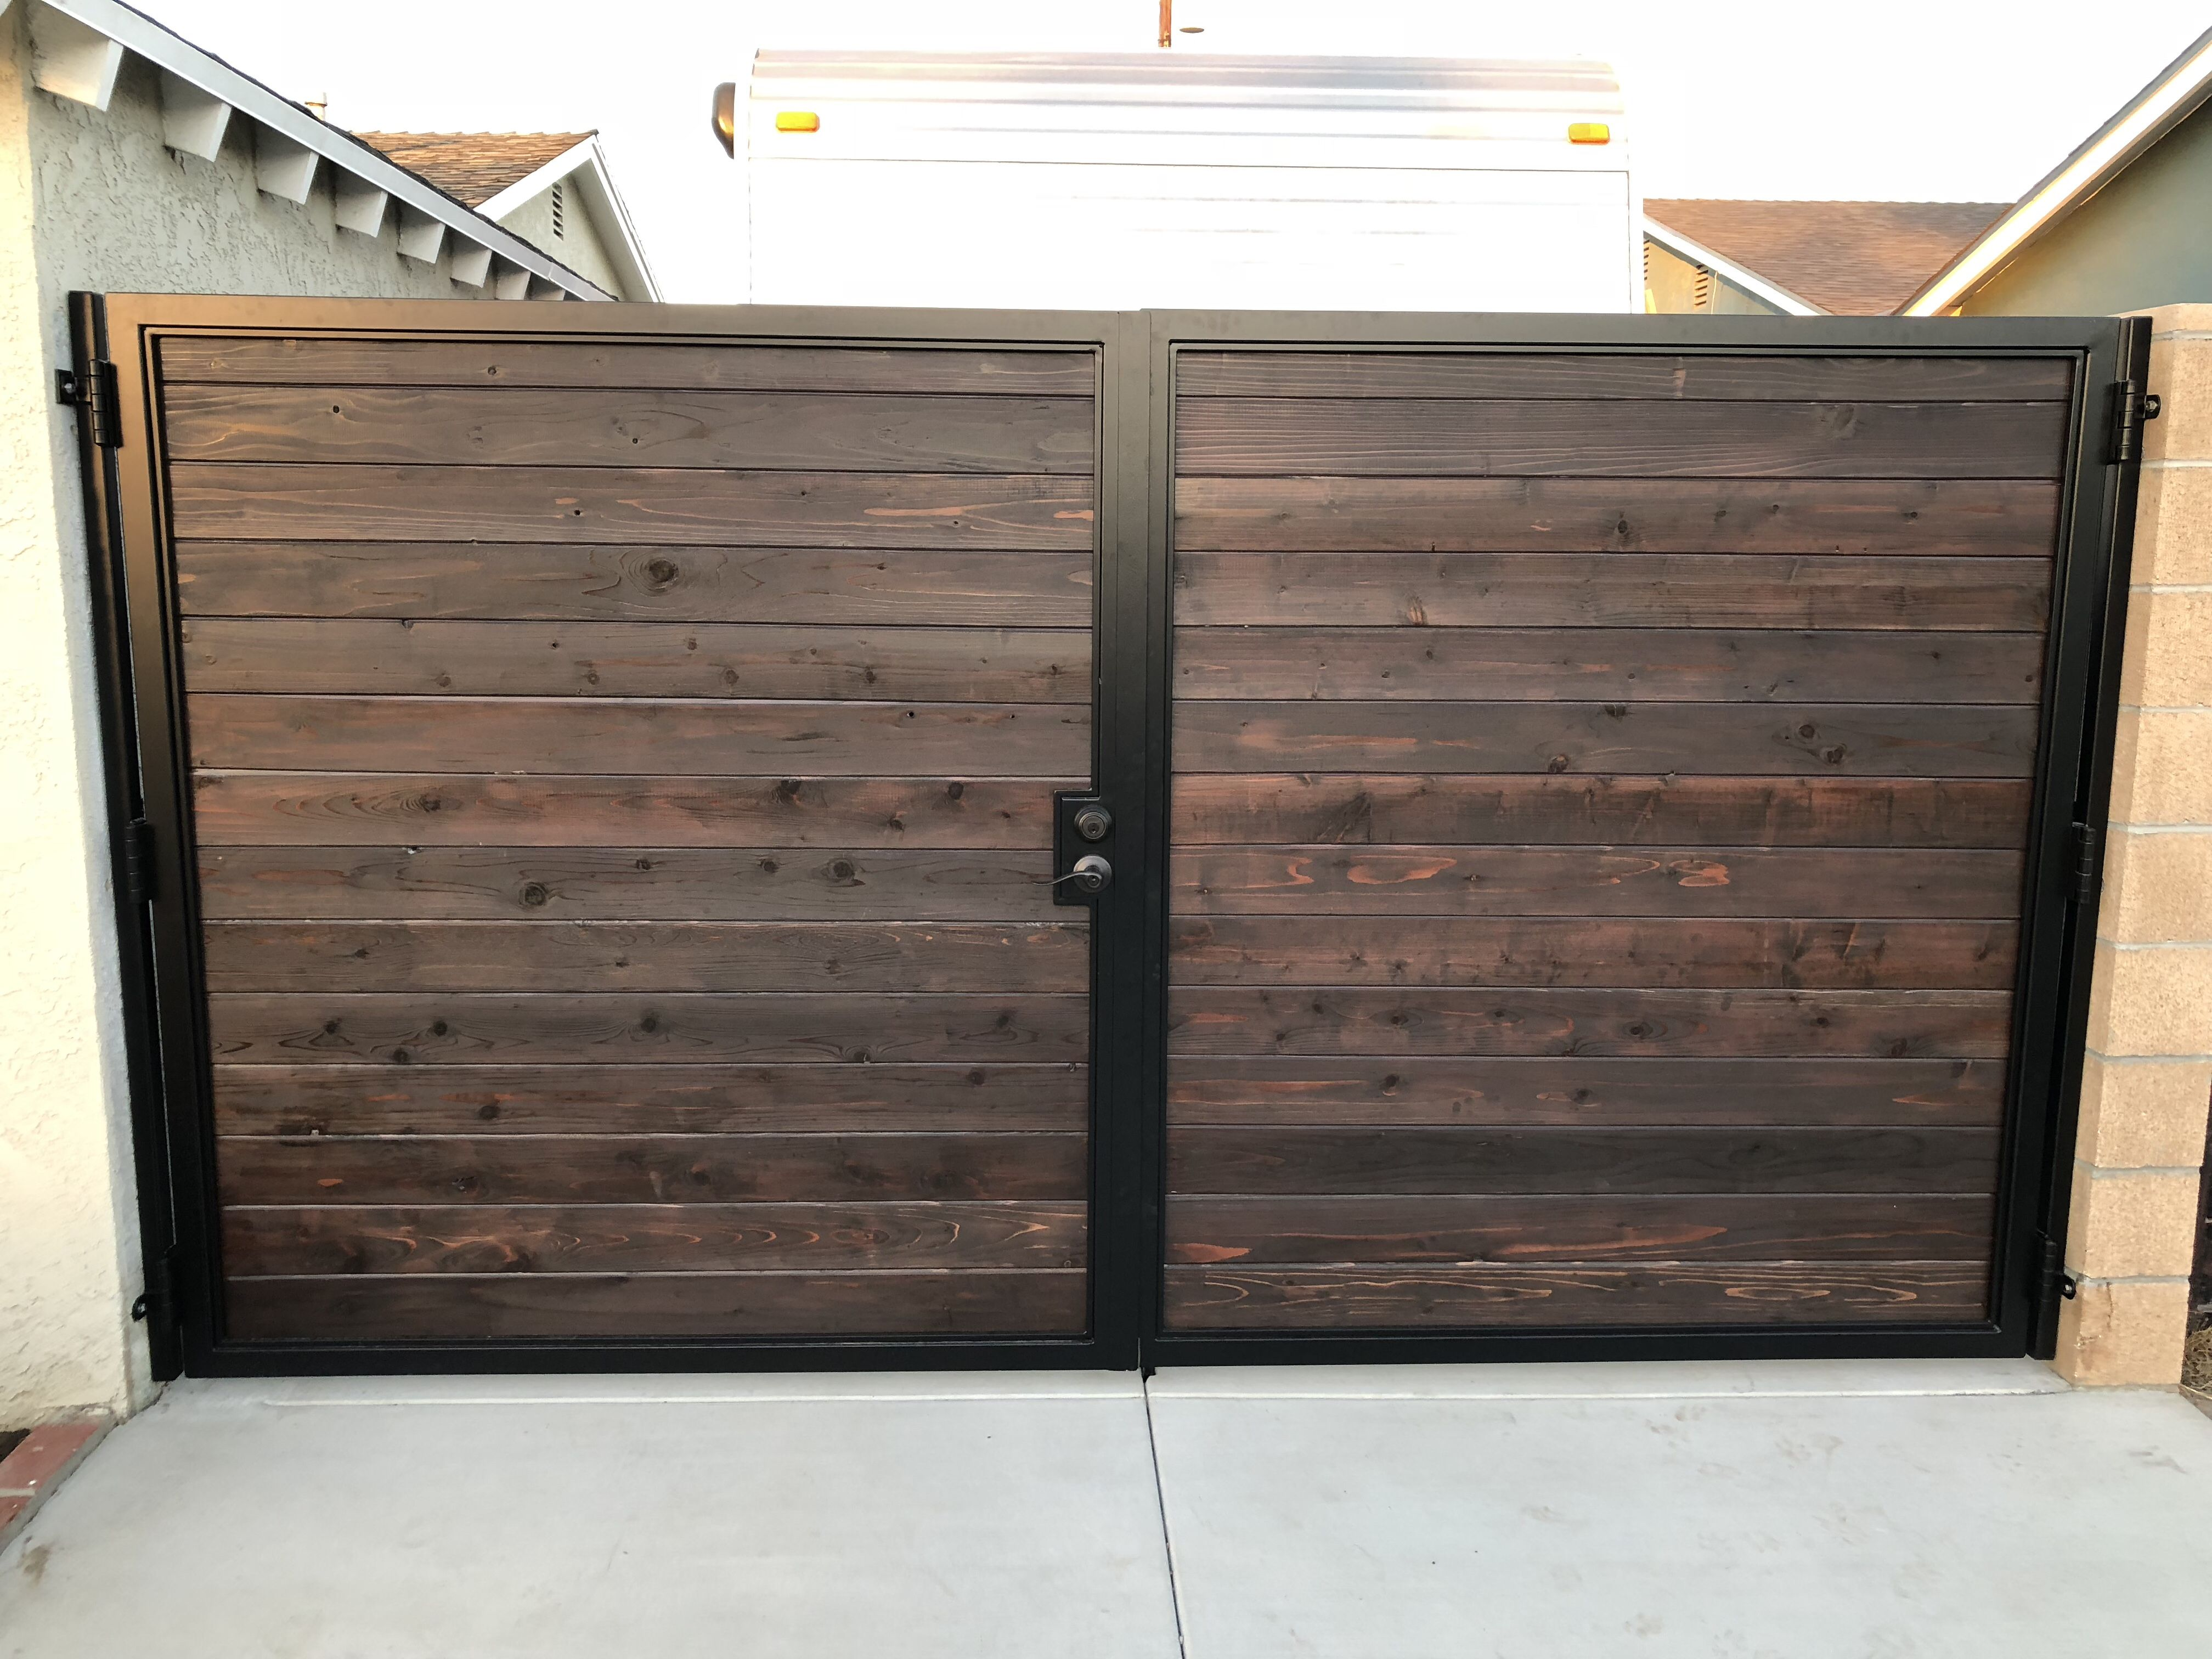 Double Door Gate For Rv Access Frame Is Constructed Out Of Steel